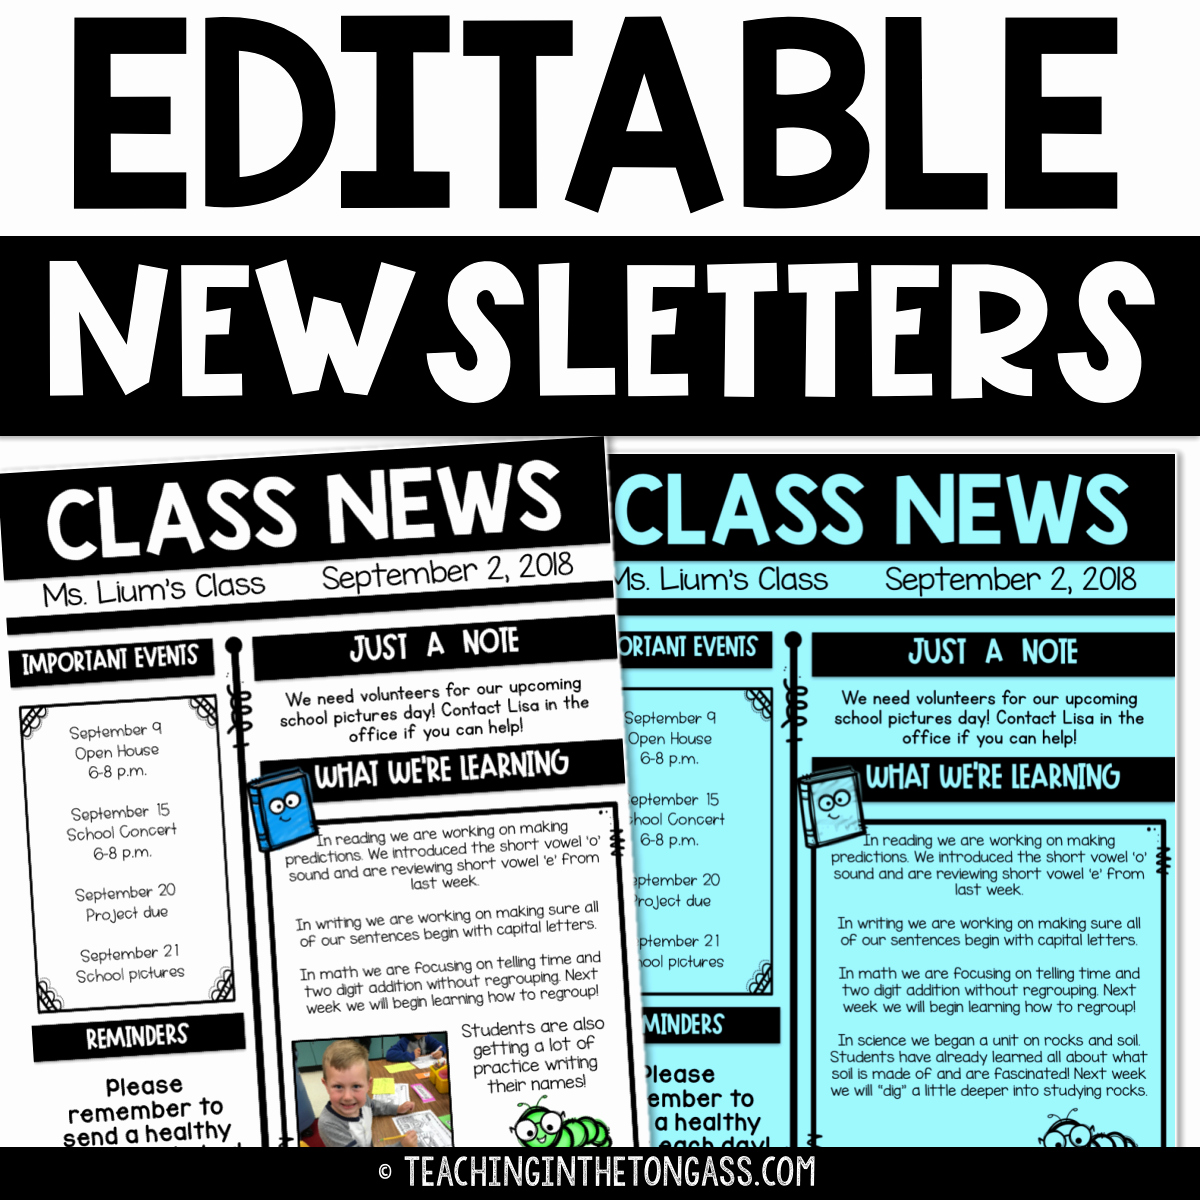 Weekly Classroom Newsletter Template Best Of Weekly Class Newsletter Template Teaching In the tongass